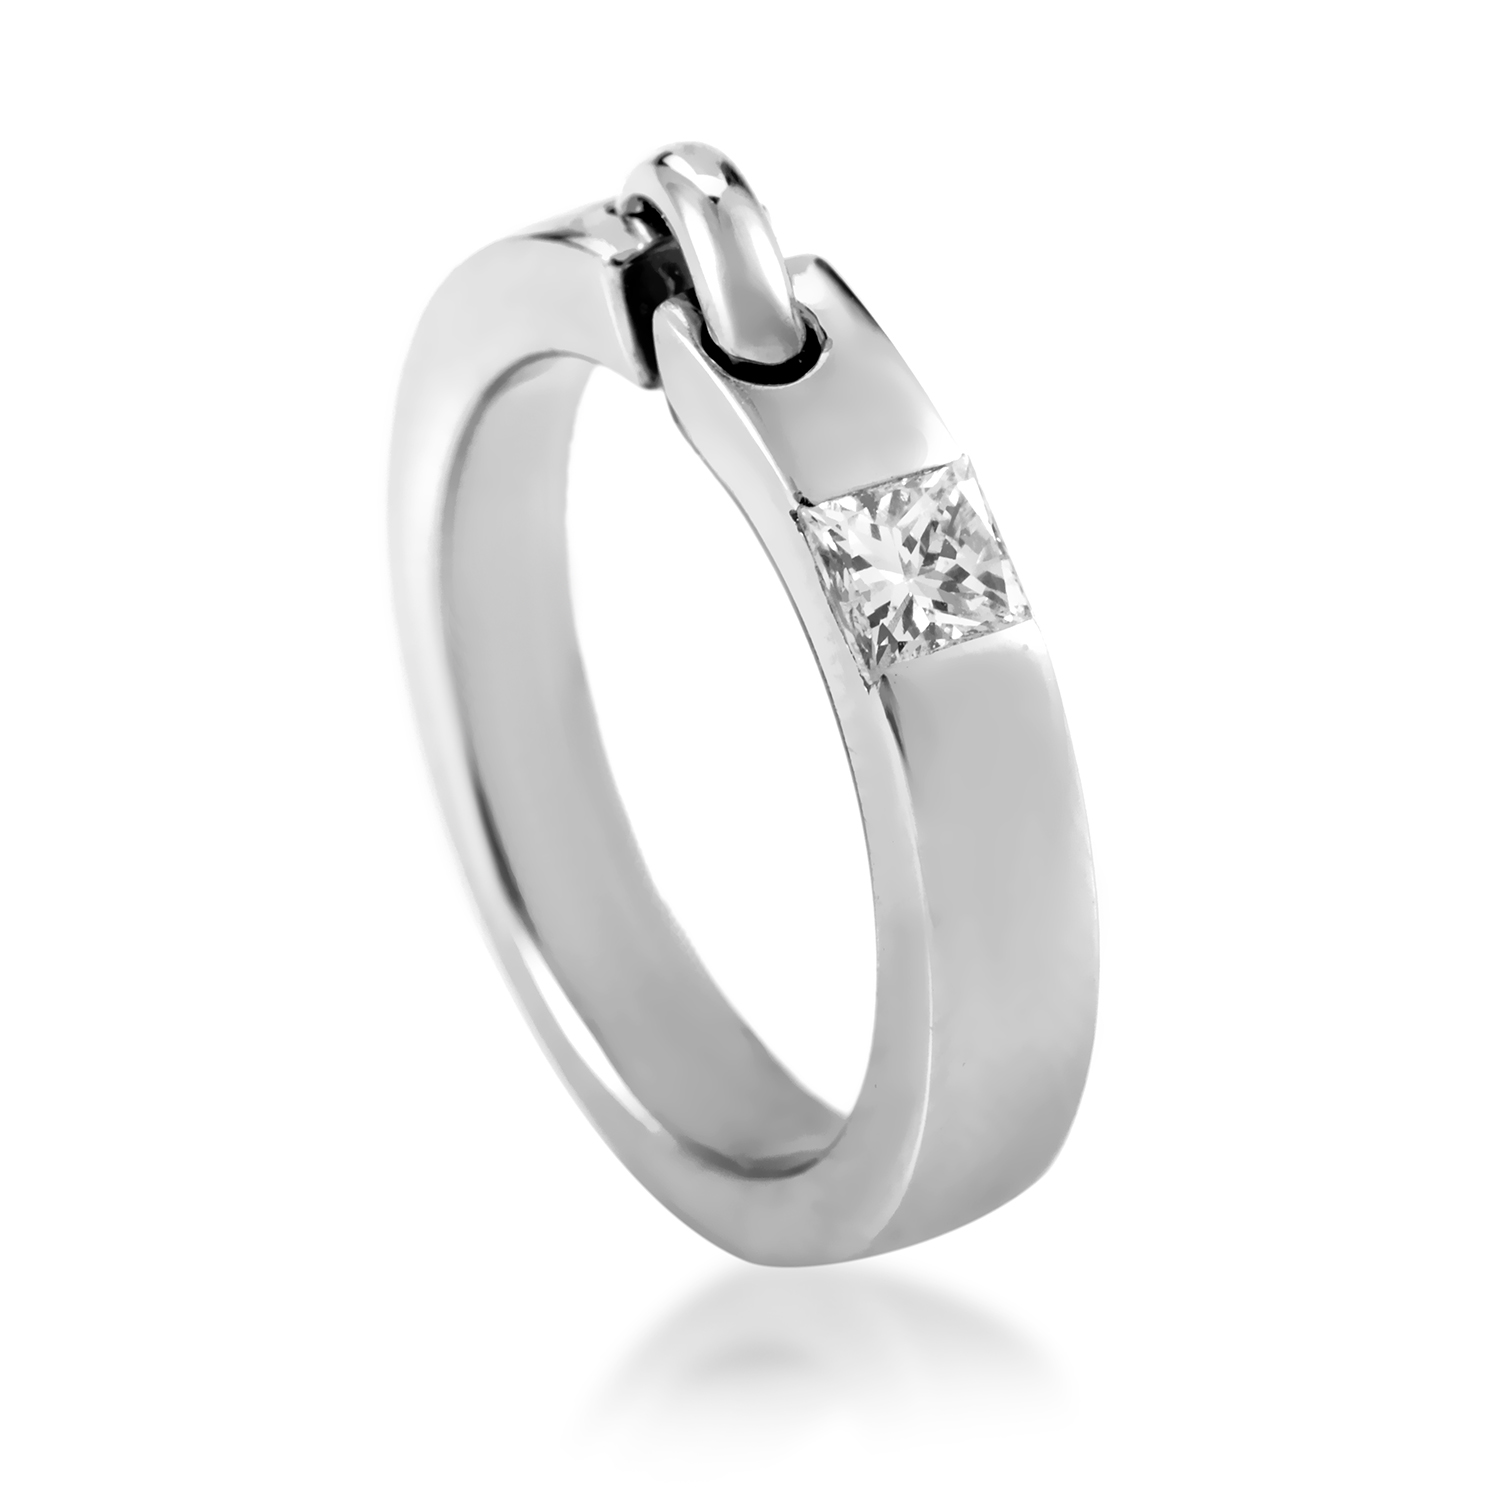 Chaumet Liens Women's 18K White Gold Diamond Band Ring AK1B3937